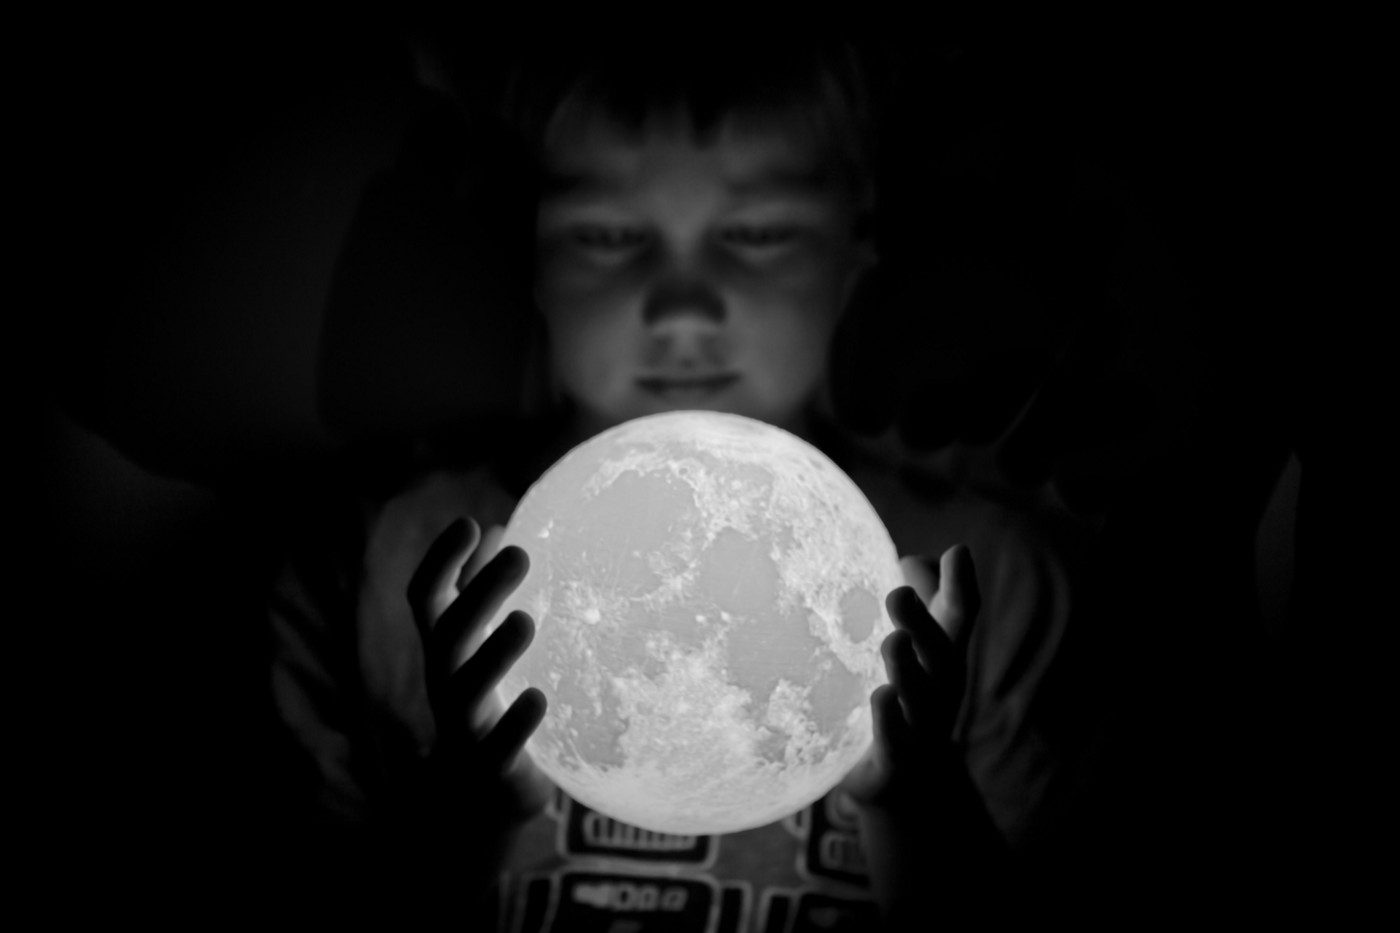 Black and white photo of a young boy holding a moon figure in his hands.